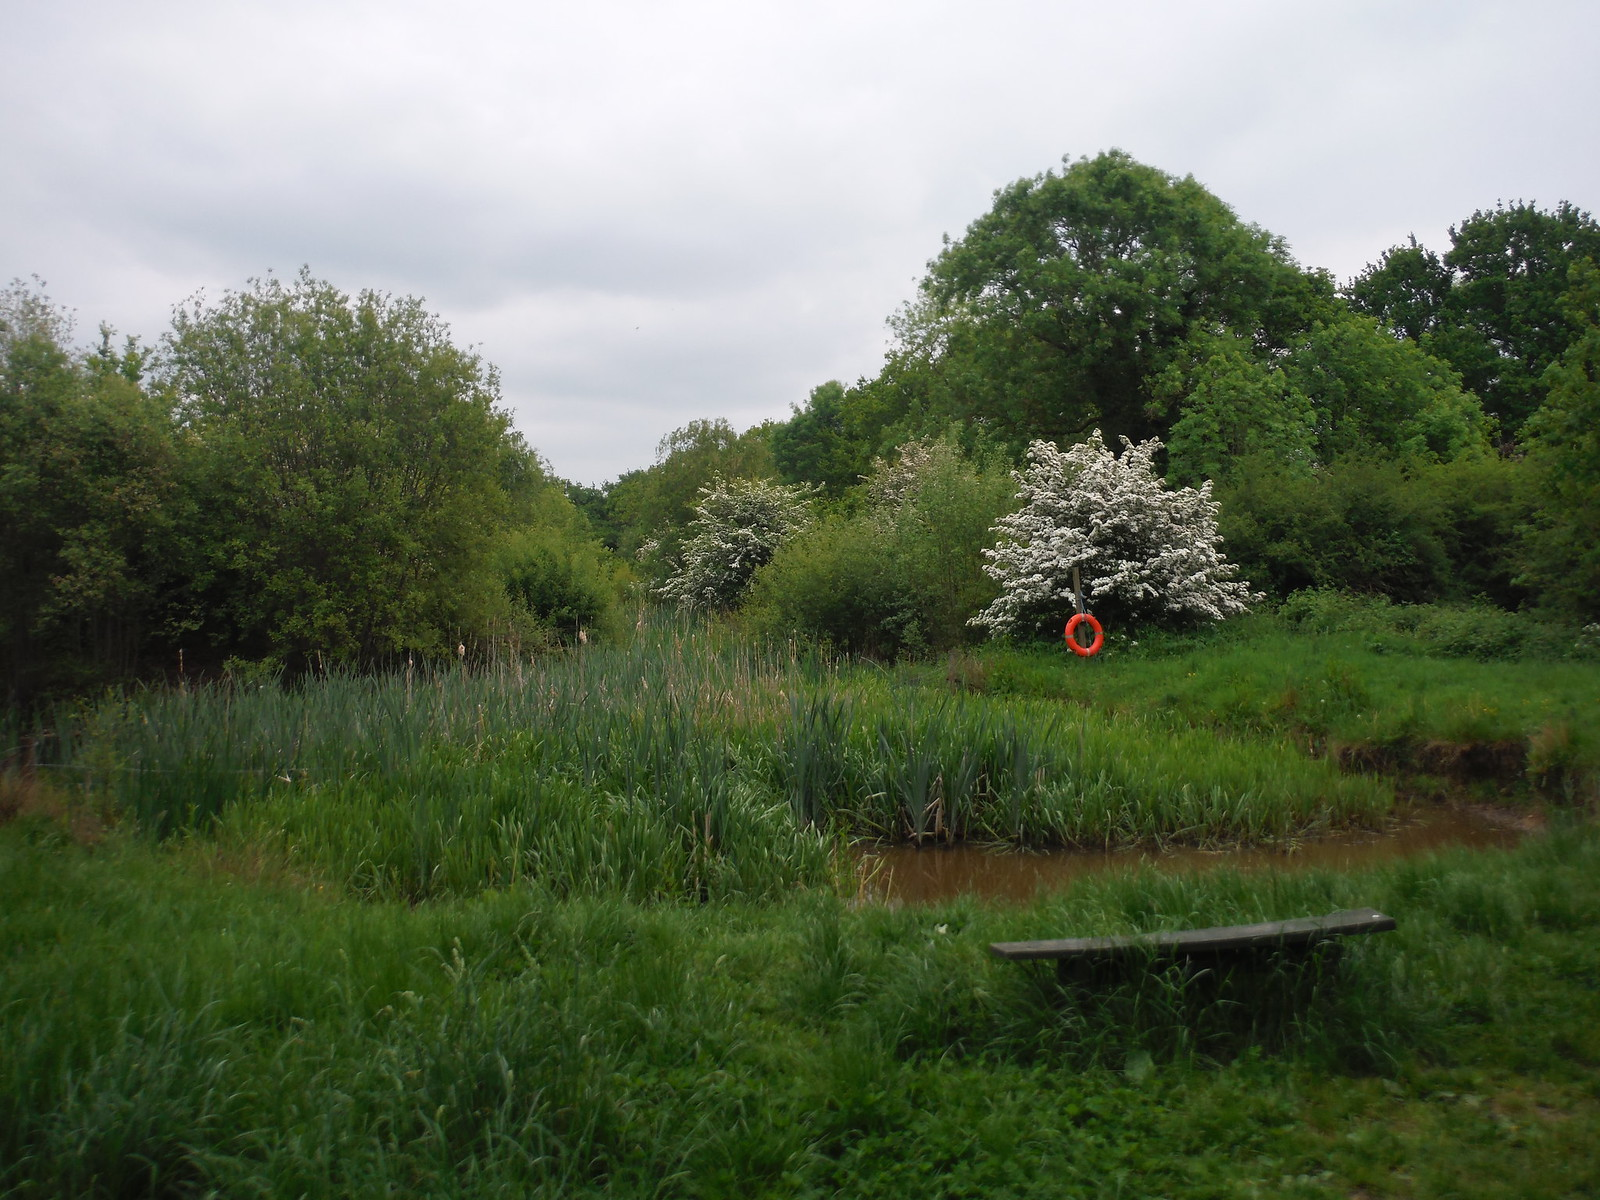 In Crowsheath Community Woodland SWC Walk 158 - Ingatestone to Battlesbridge or Wickford